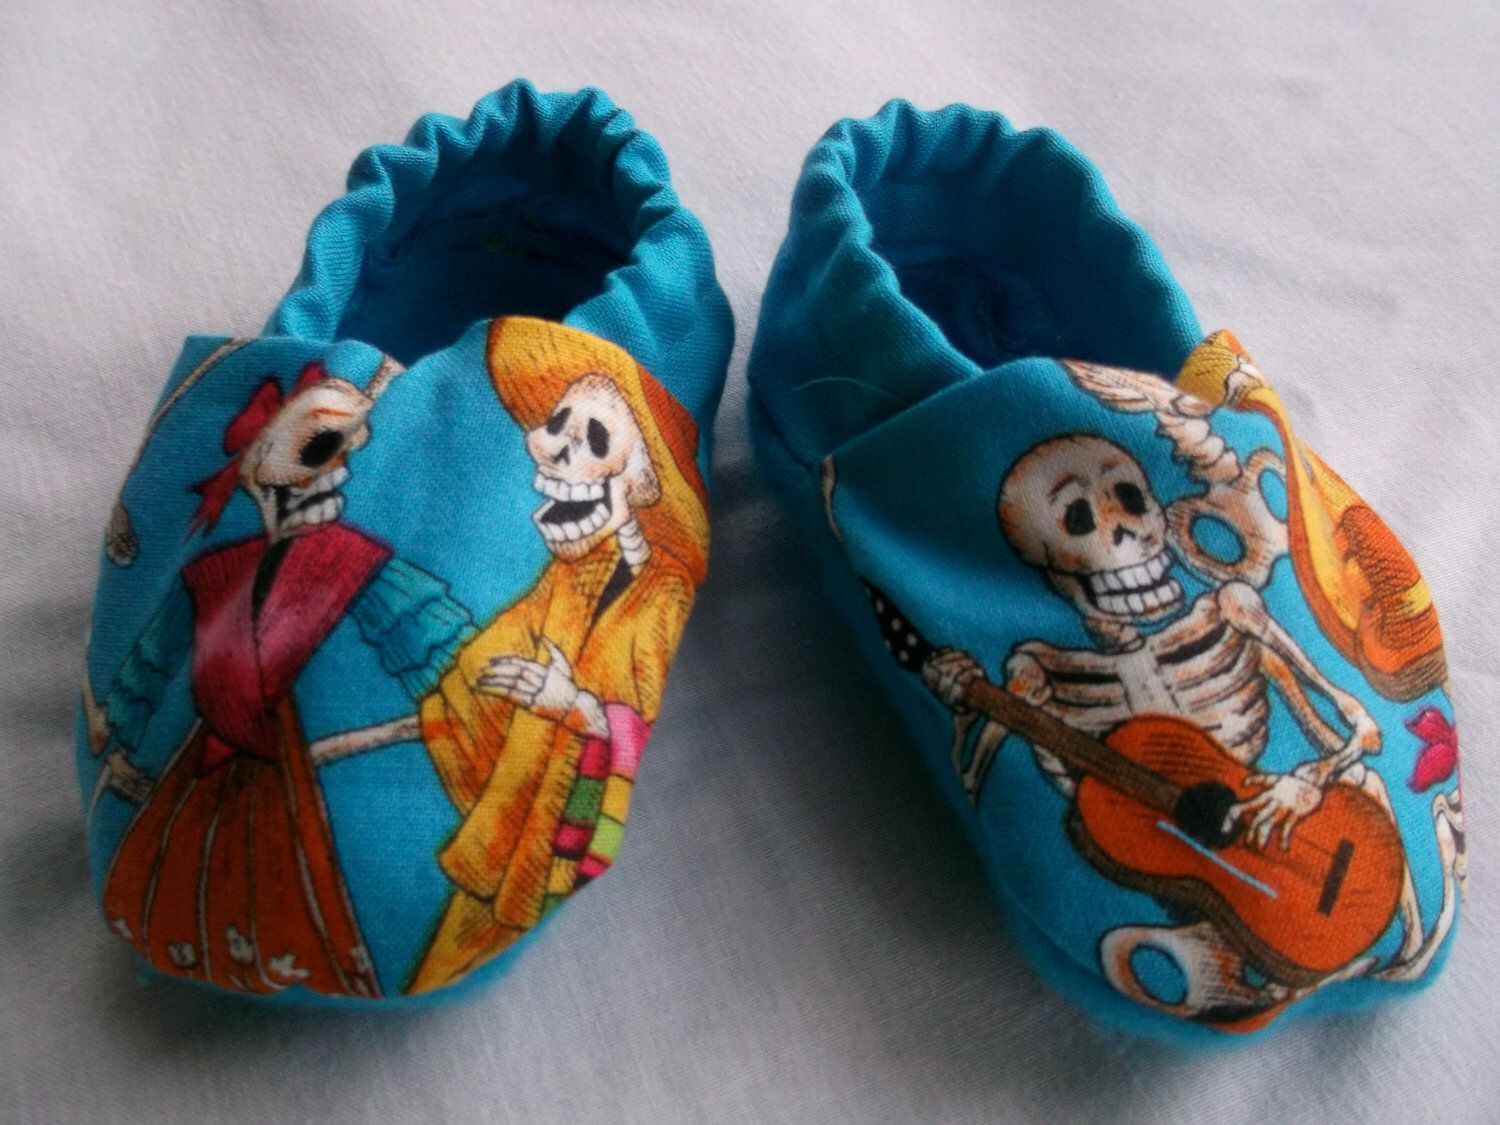 Baby Booties in Blue Day of the Dead Fabric by DesignedForDelilah on Etsy https://www.etsy.com/listing/116601947/baby-booties-in-blue-day-of-the-dead